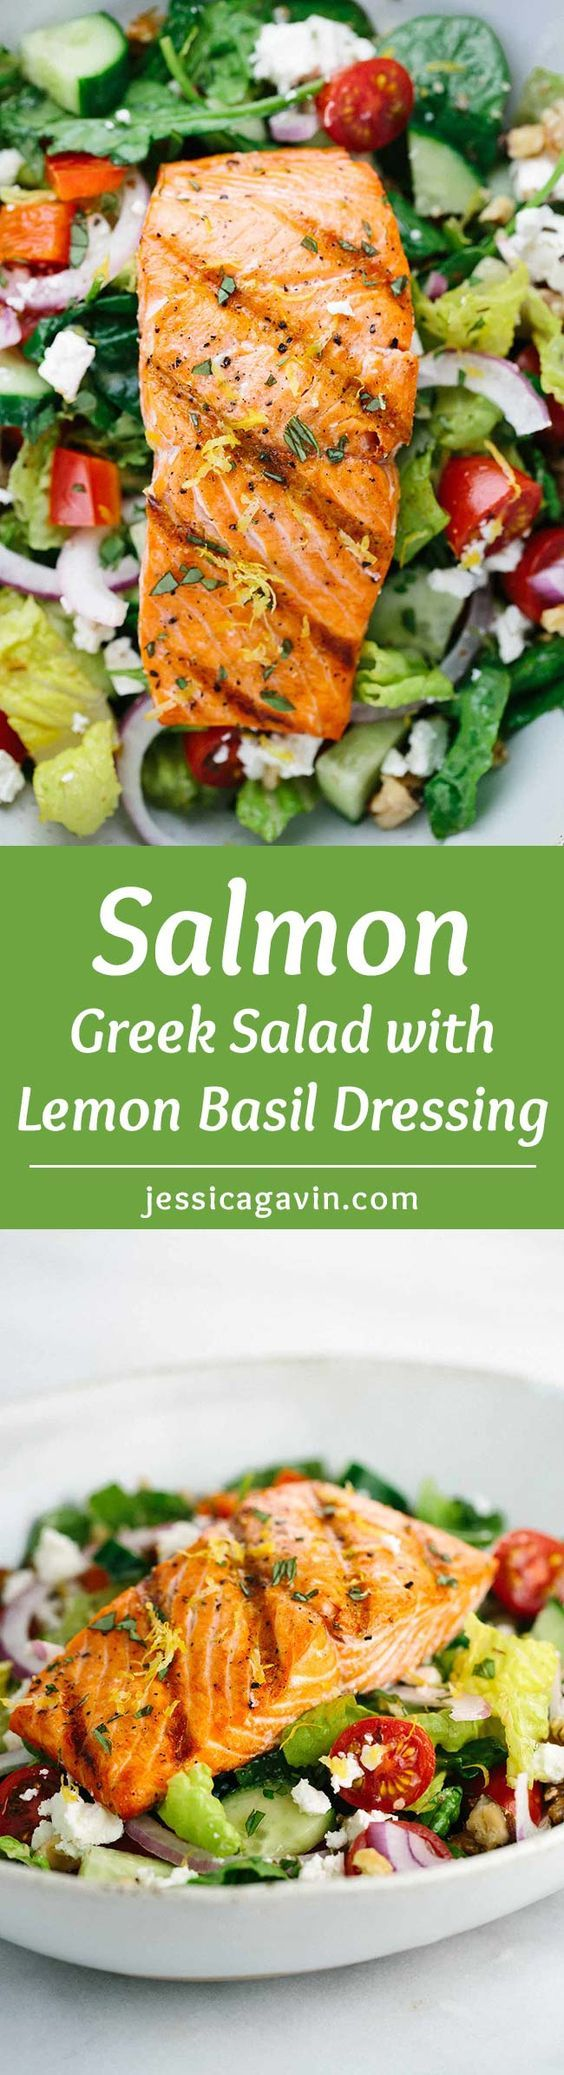 Salmon Greek Salad with Lemon Basil Dressing - A light and healthy recipe that tastes amazing! Crisp vegetables are tossed in a tangy lemon basil dressing and topped with flaky salmon. | jessicagavin.com